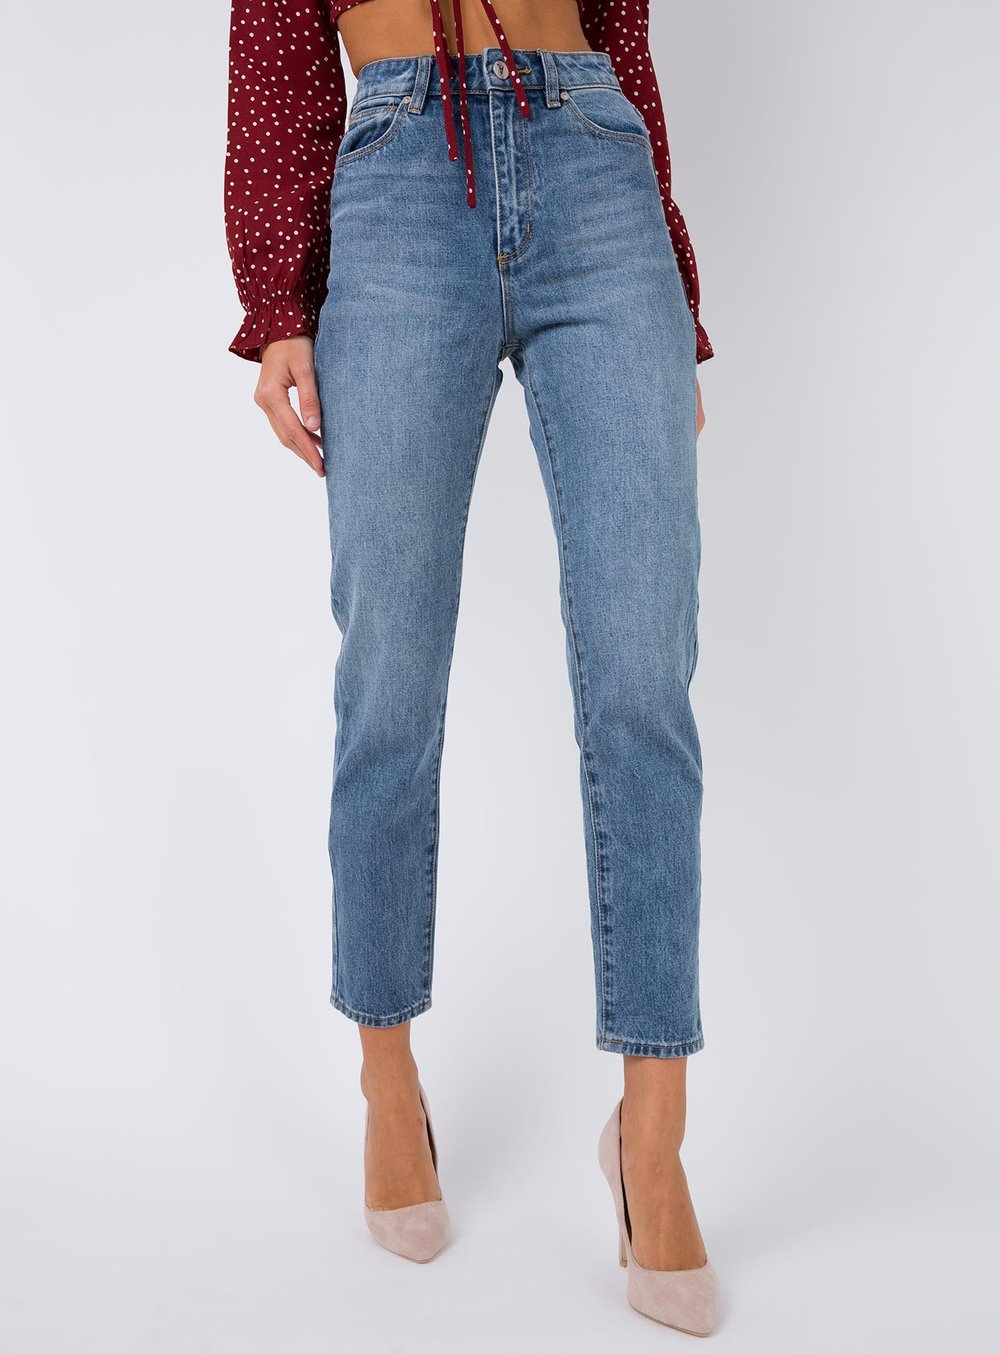 ABRAND WALLFLOWER 94 HIGH SLIM JEANS